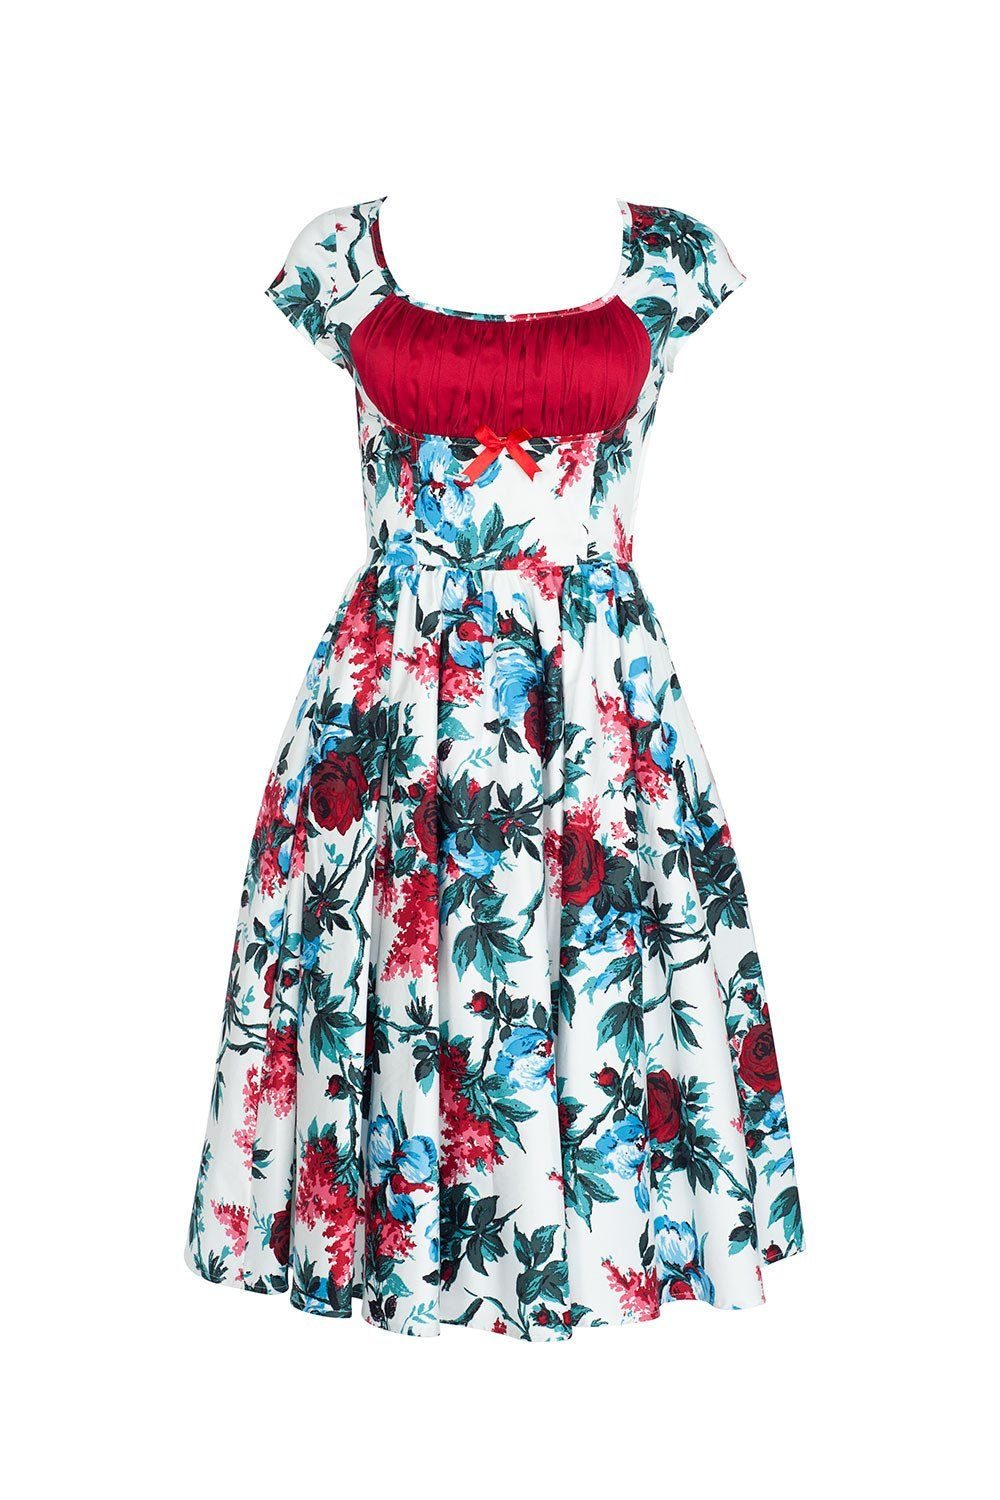 Final Sale - Pinup Couture Evelyn Dress in White and Red Floral ...